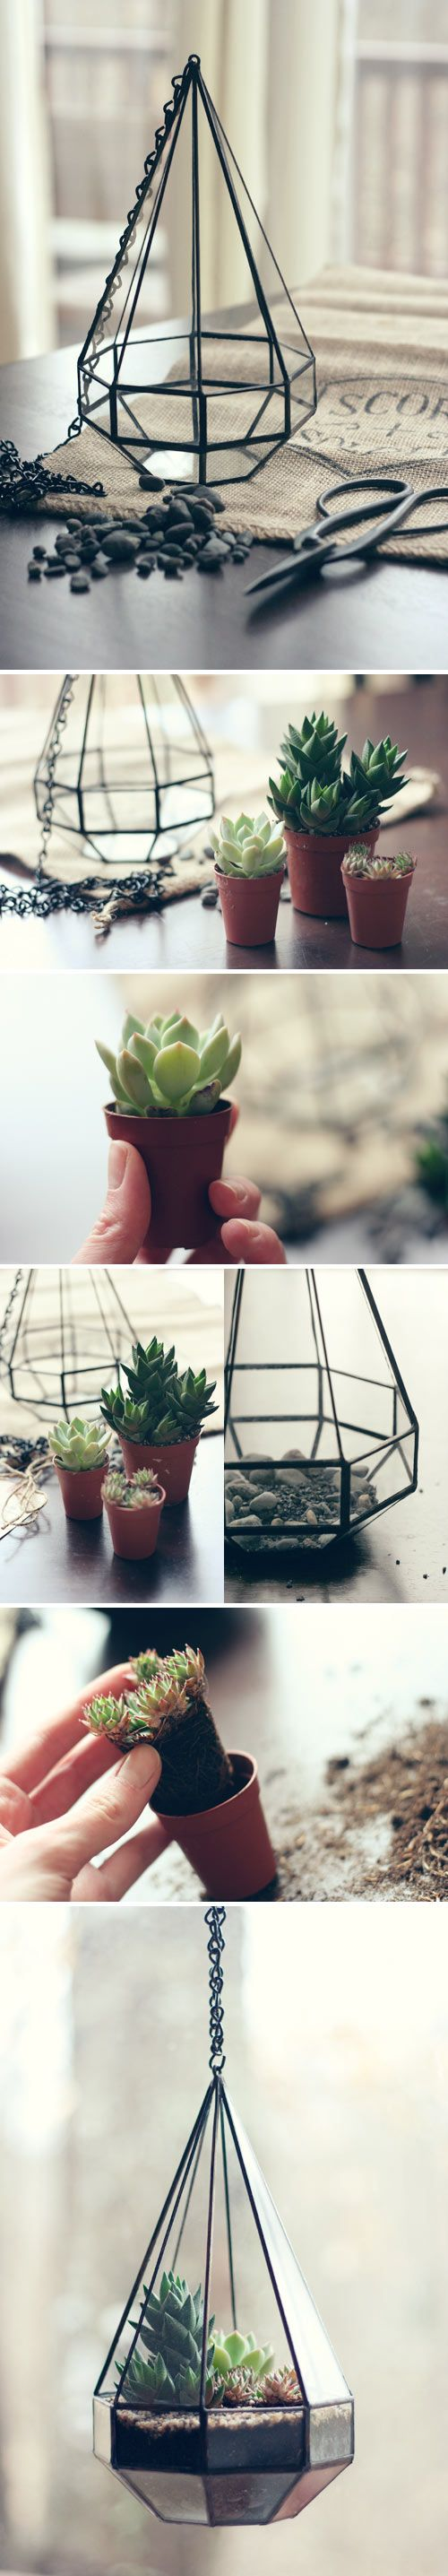 Hanging Terrarium | 21 Simple Ideas For Adorable DIY Terrariums. Love these